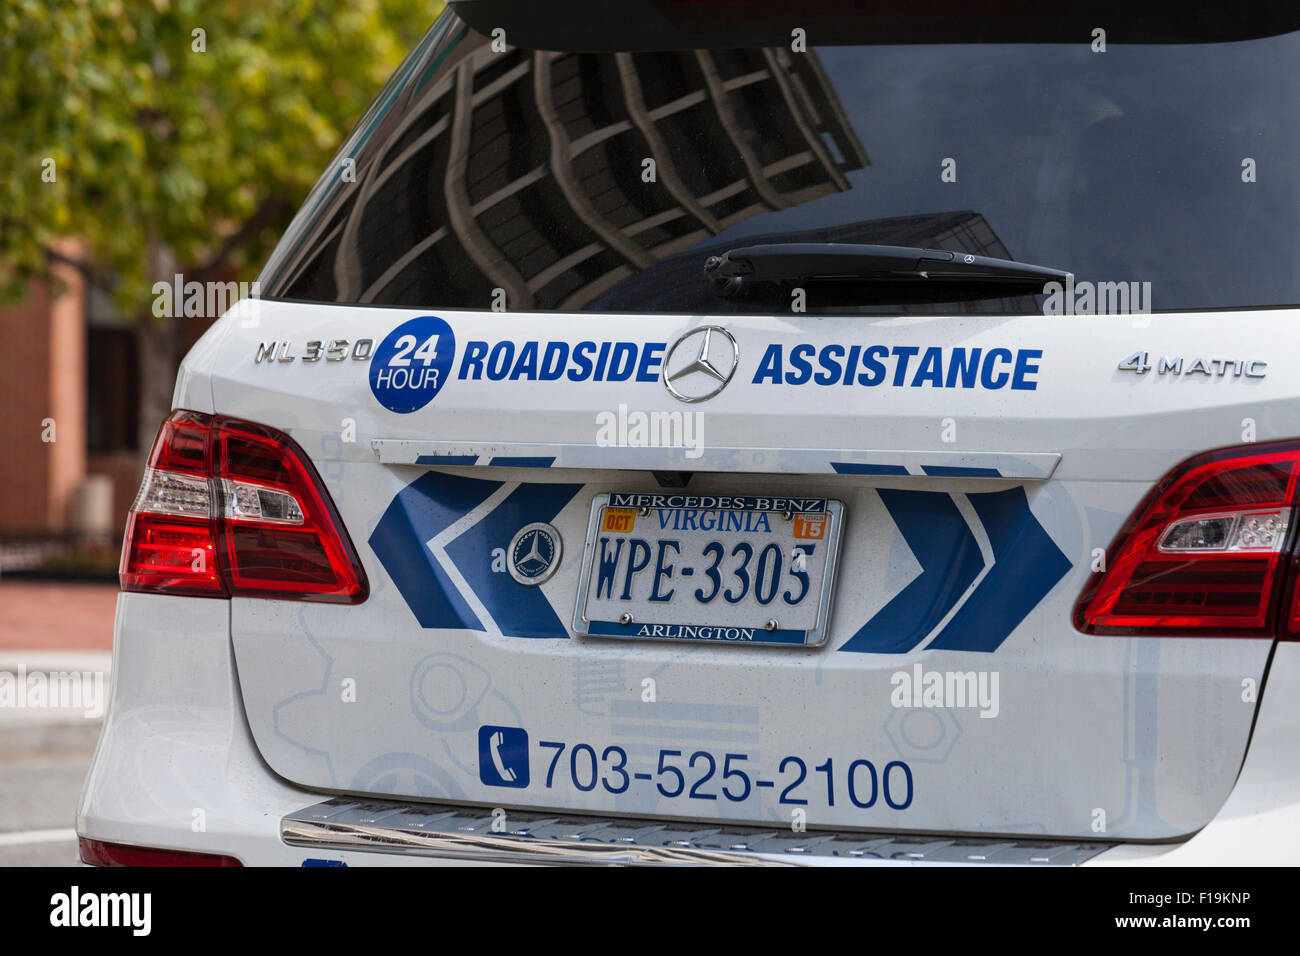 Mercedes benz 24hr roadside assistance vehicle usa stock for Mercedes benz road side assistance